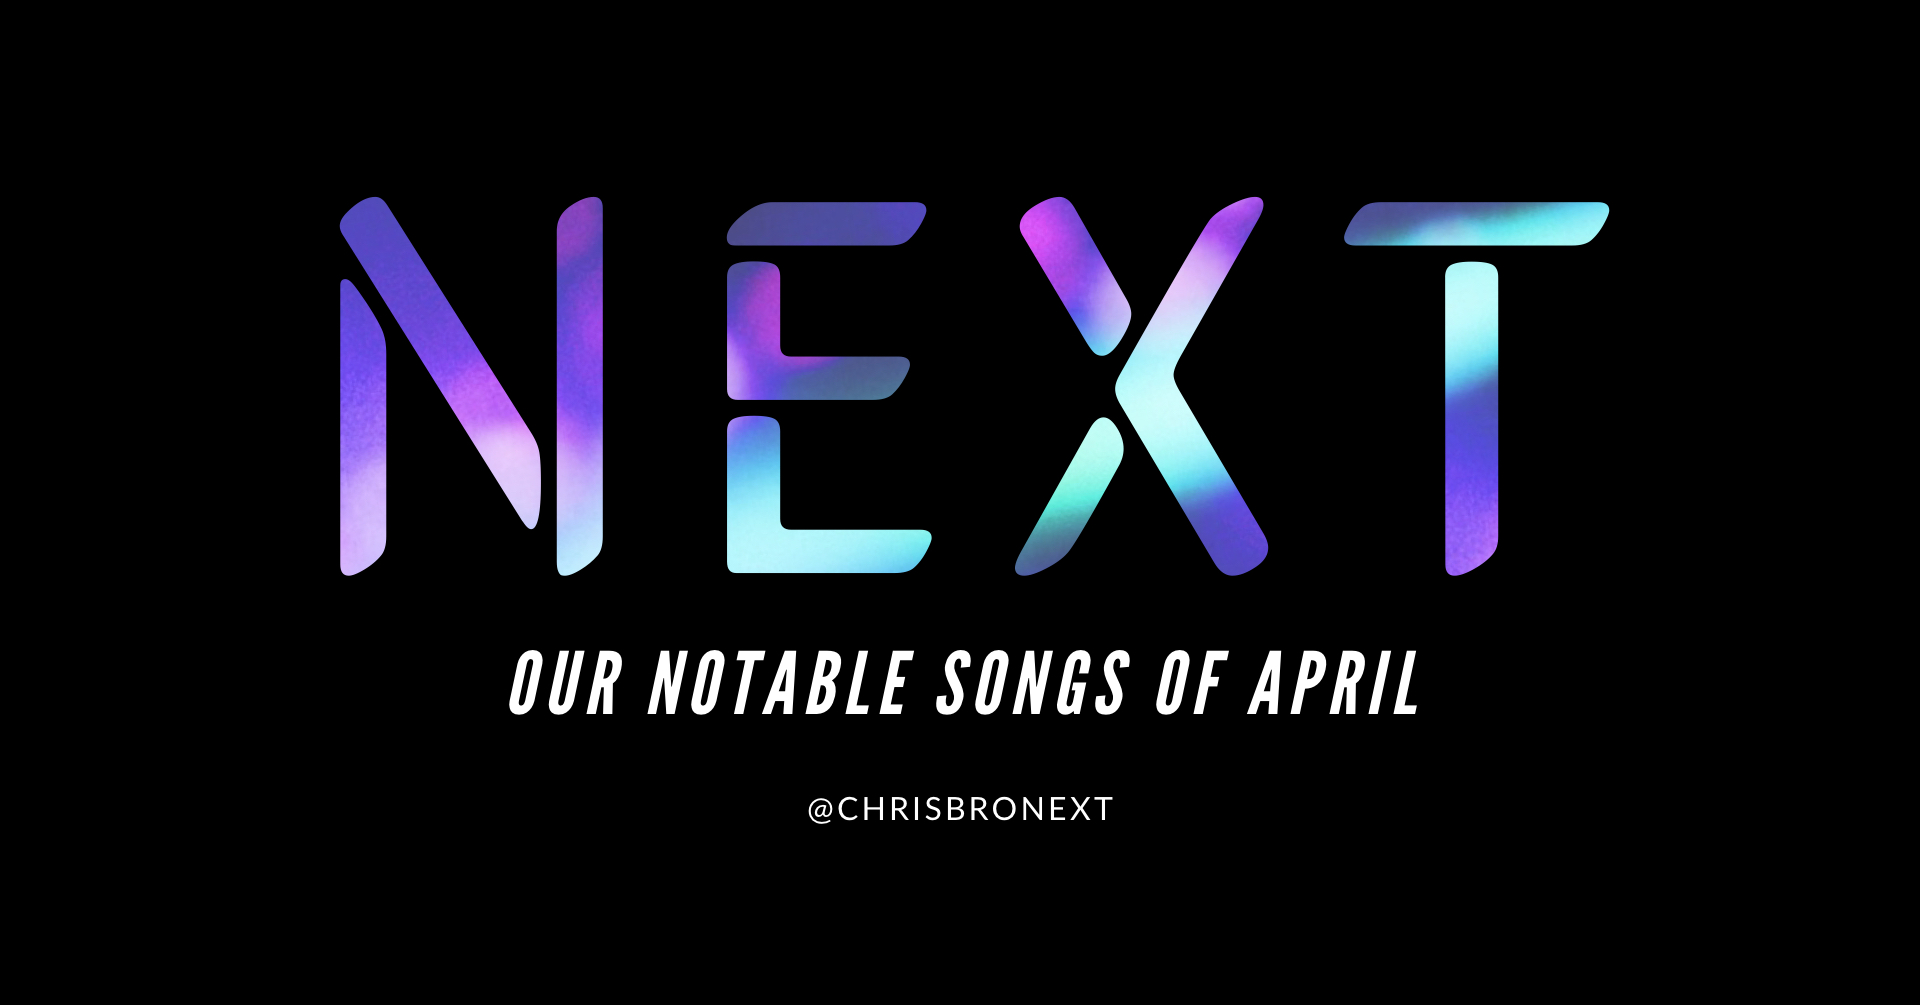 Next Week 783 Our Notable Songs of April